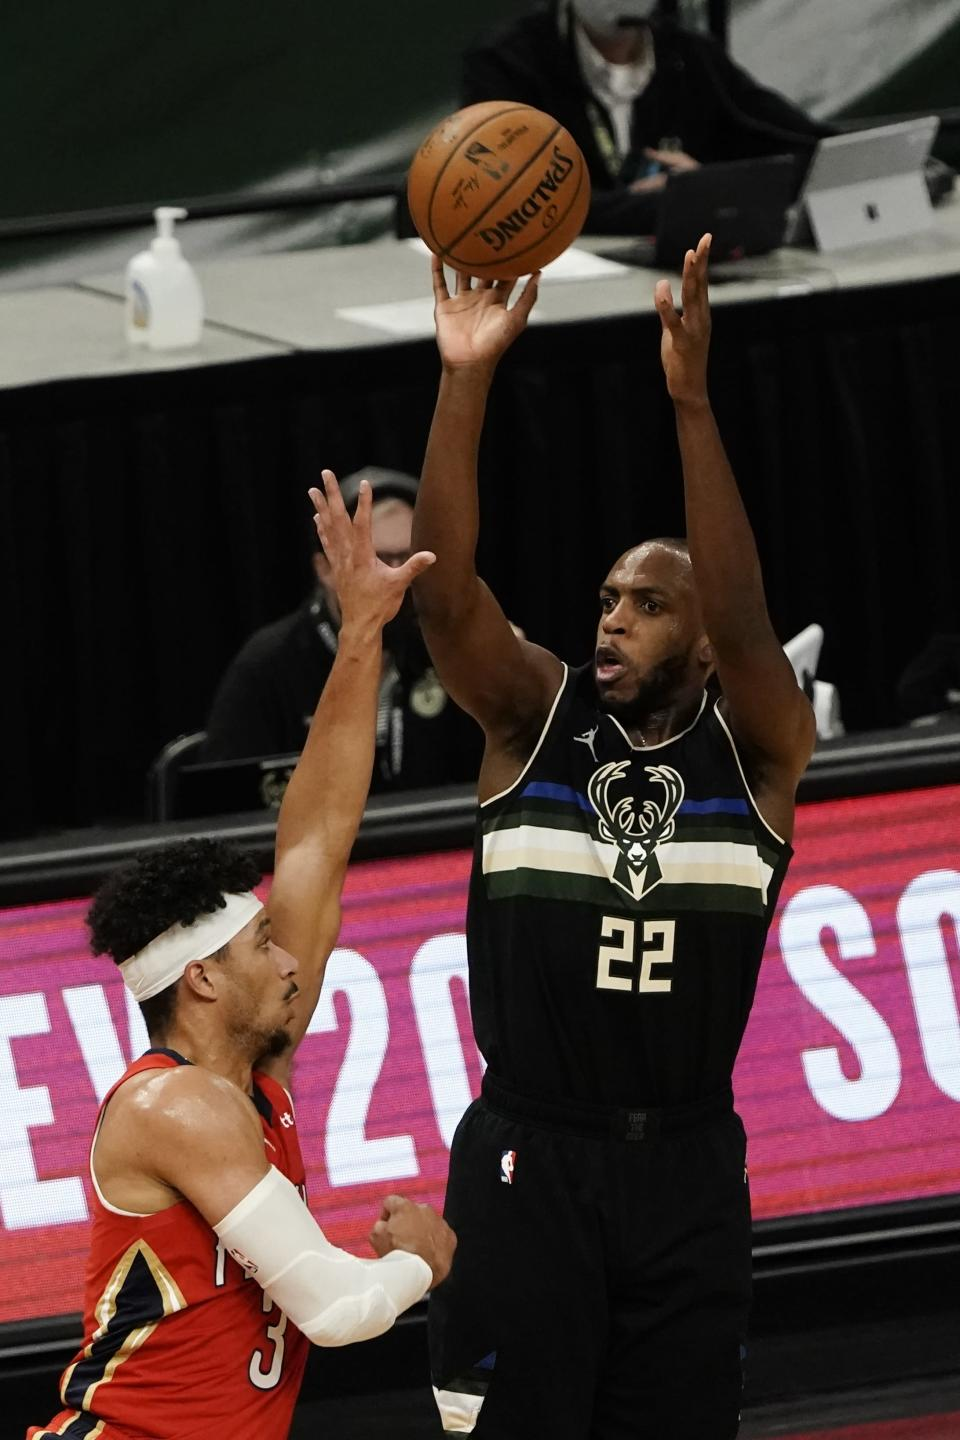 Milwaukee Bucks' Khris Middleton shoots over New Orleans Pelicans' Josh Hart during the second half of an NBA basketball game Thursday, Feb. 25, 2021, in Milwaukee. (AP Photo/Morry Gash)